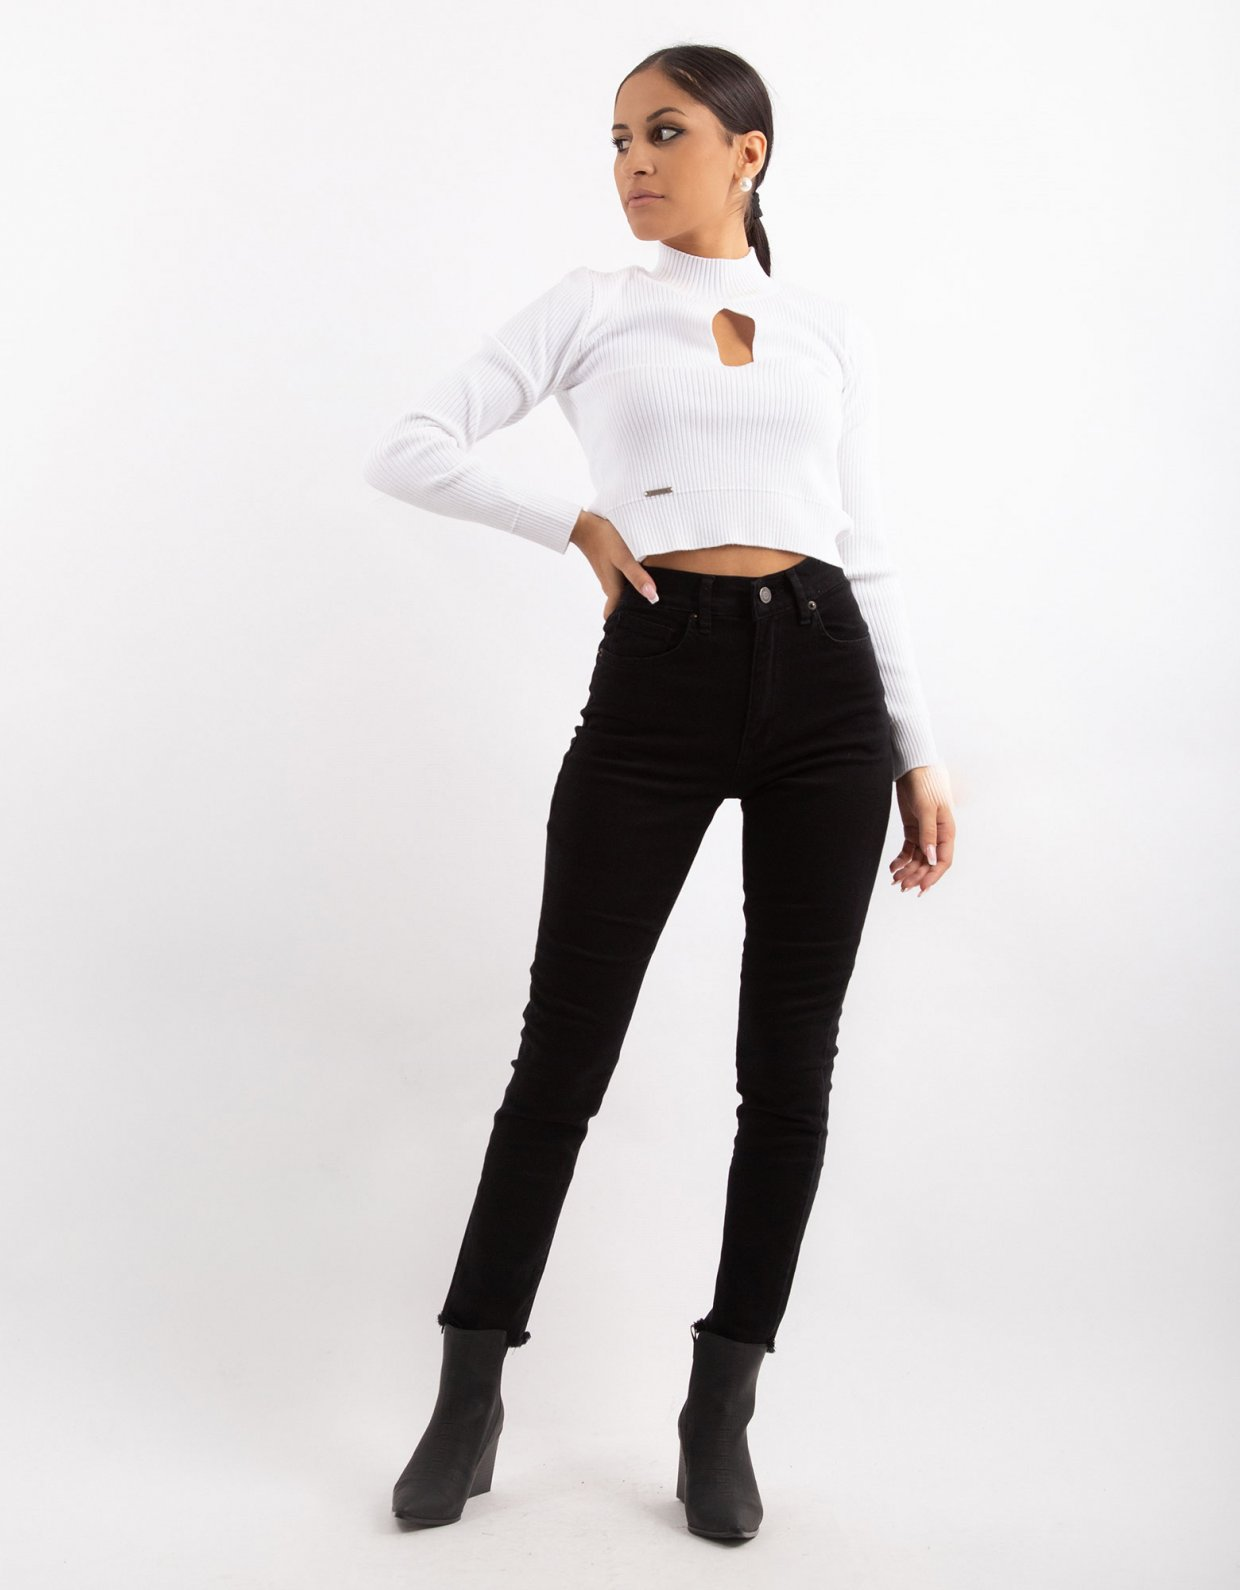 Combos Knitwear Combos W9 – White keyhole top